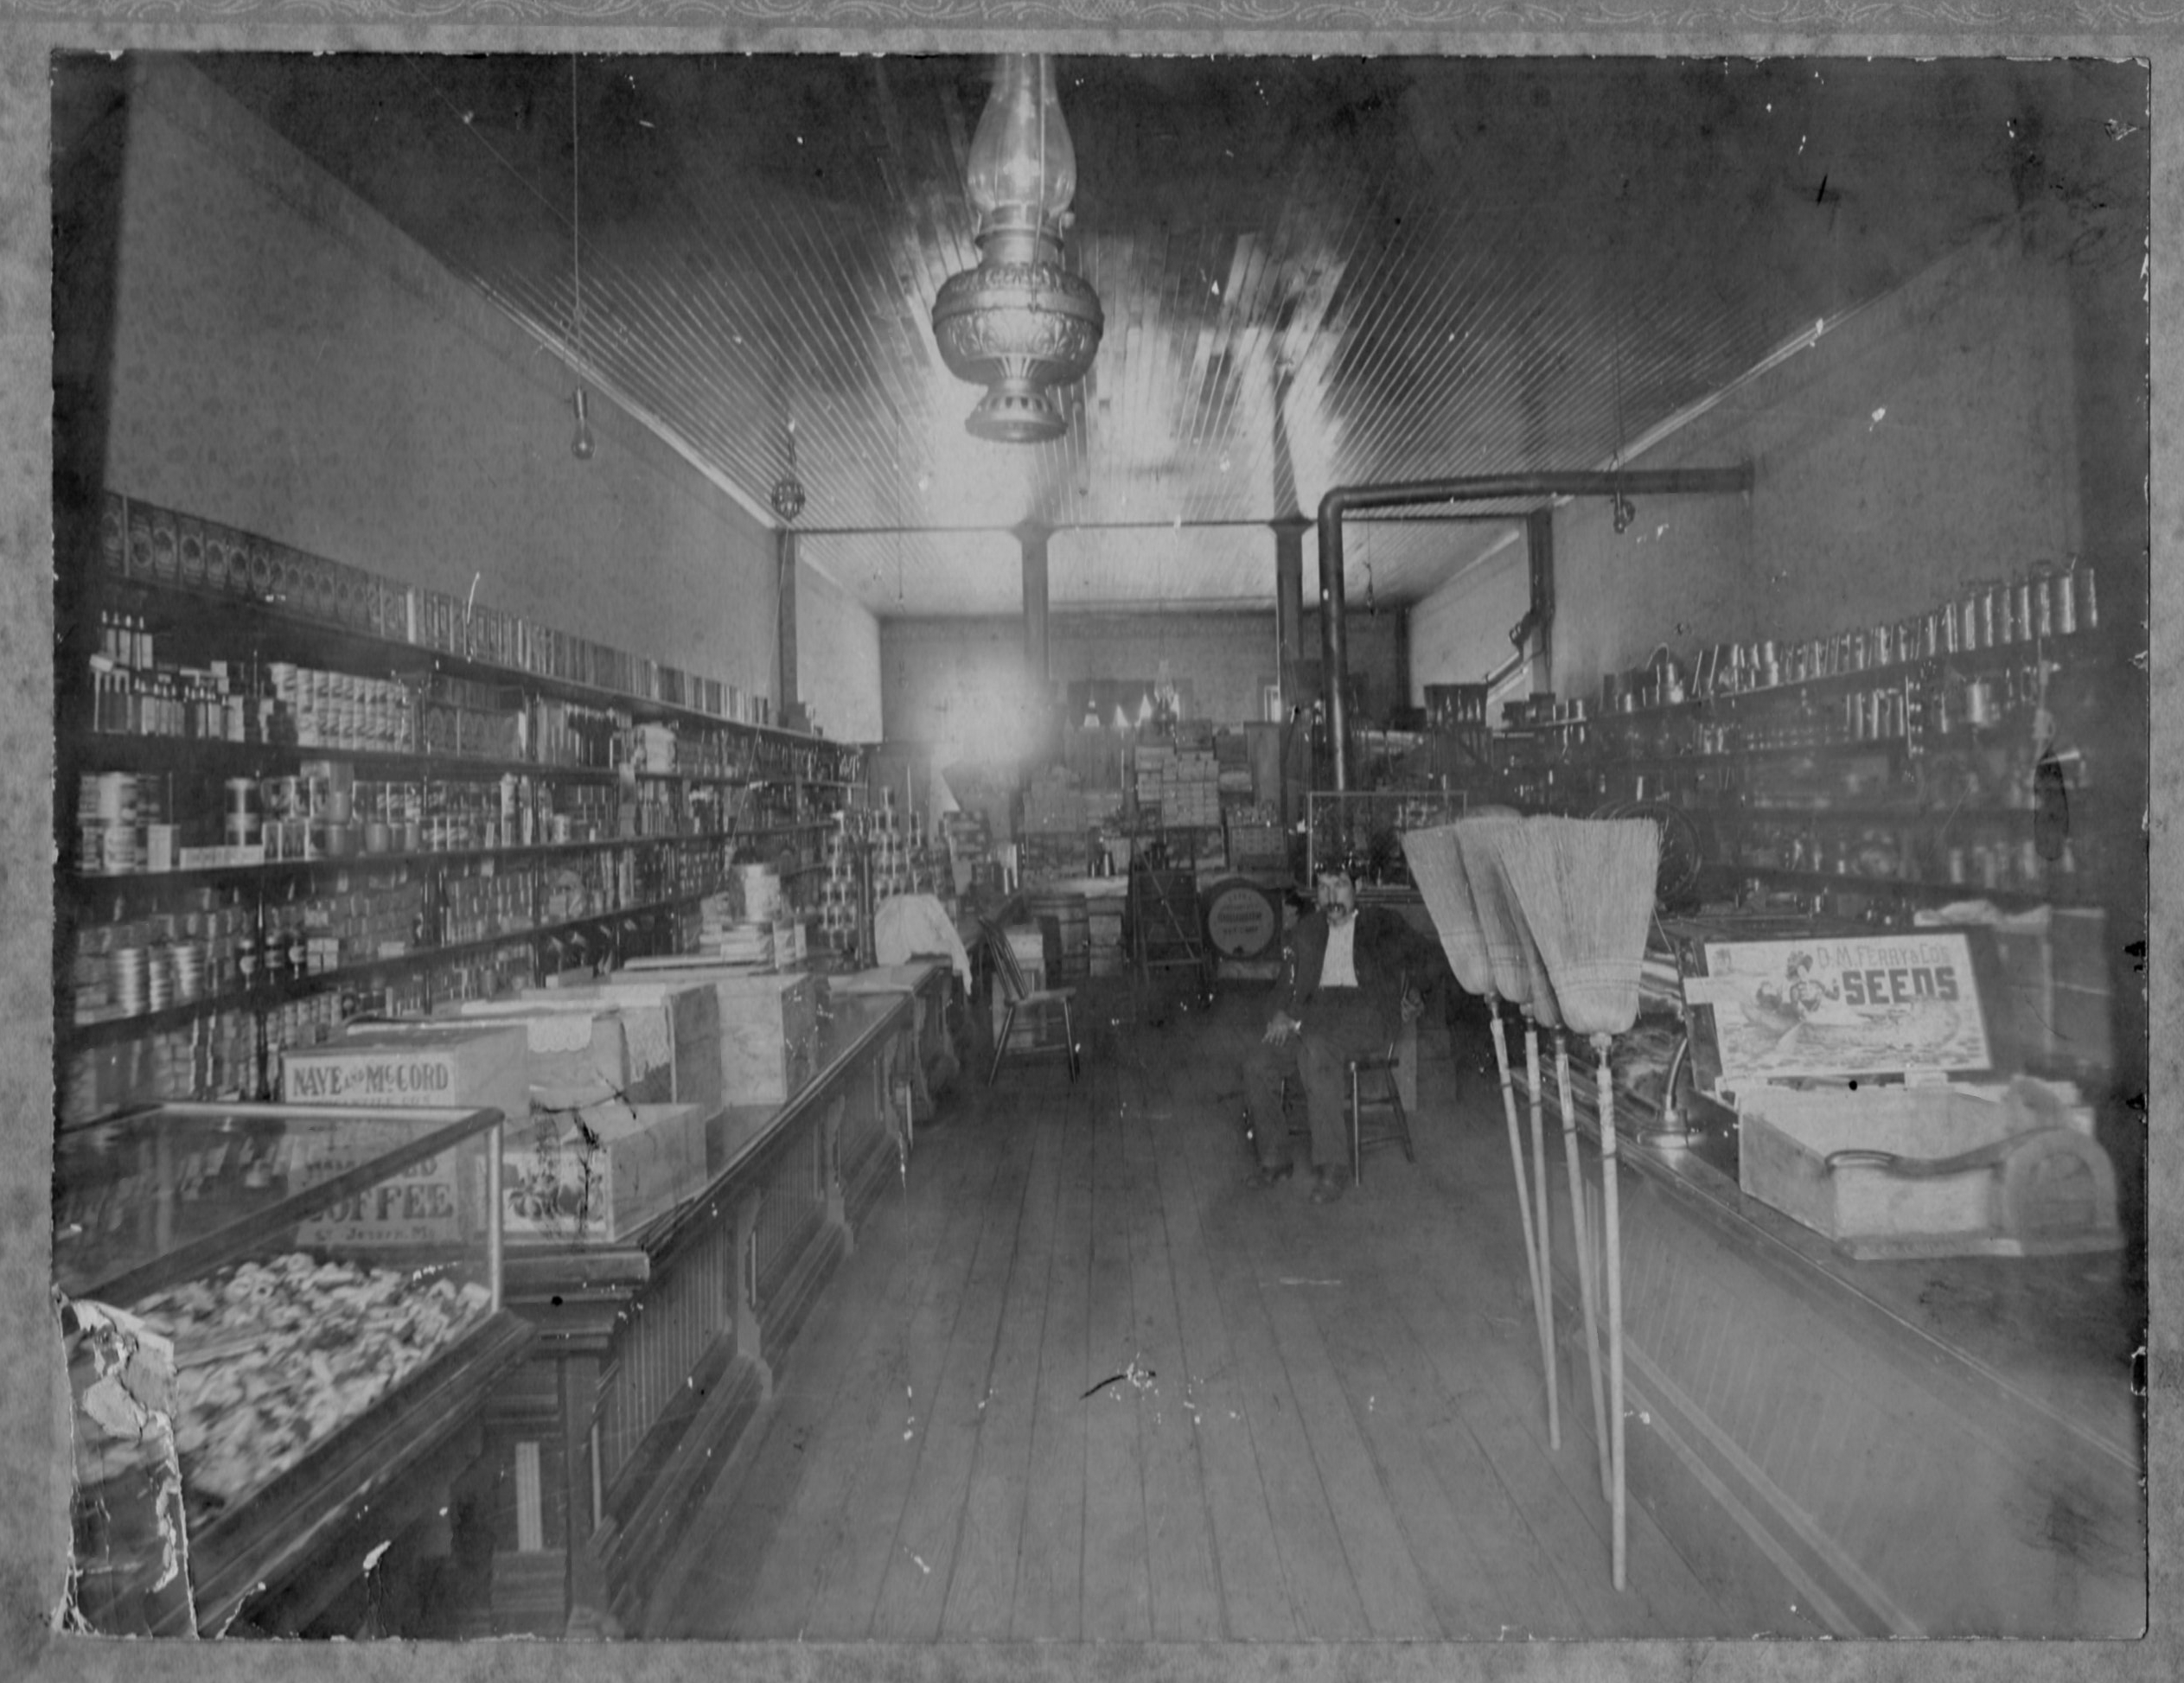 Frank Crofskey in his San Francisco shop circa 1900.